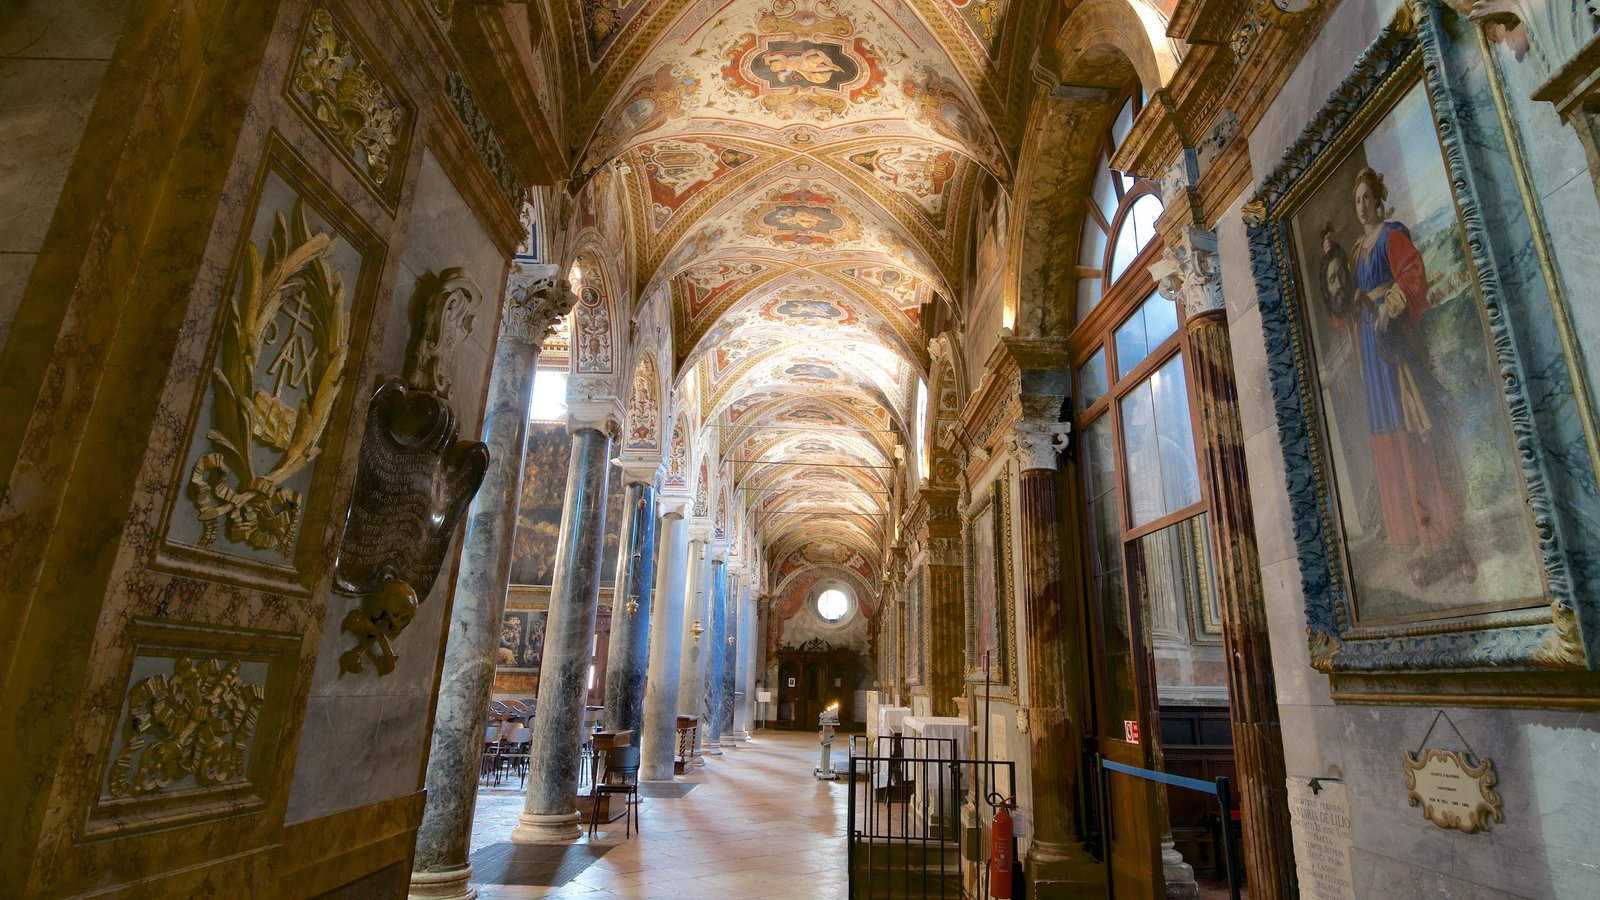 Basilica San Pietro featuring heritage architecture, religious aspects and interior views